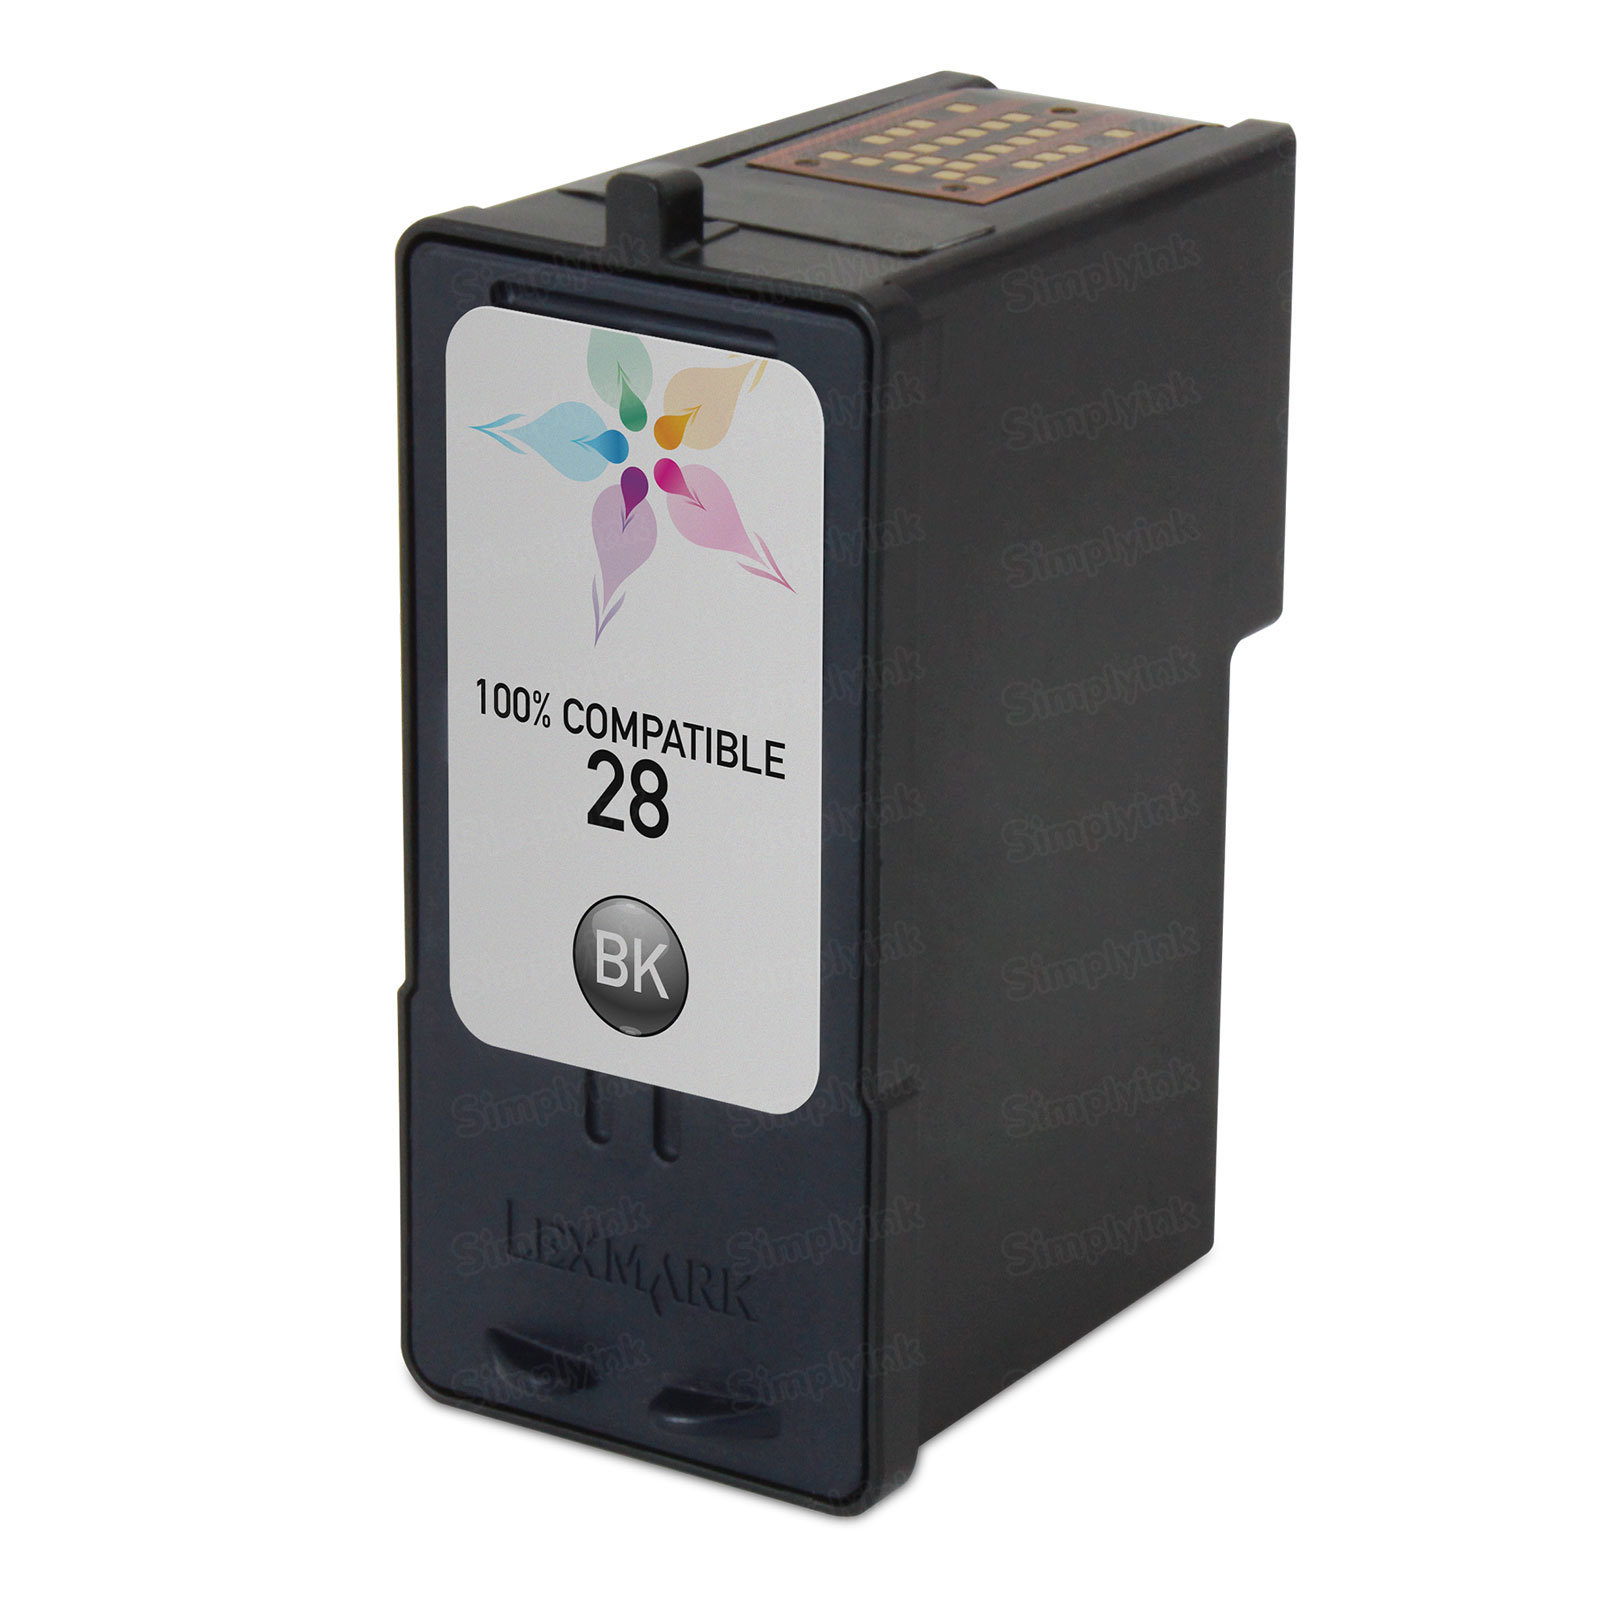 Lexmark Remanufactured 18C1528 Black Ink